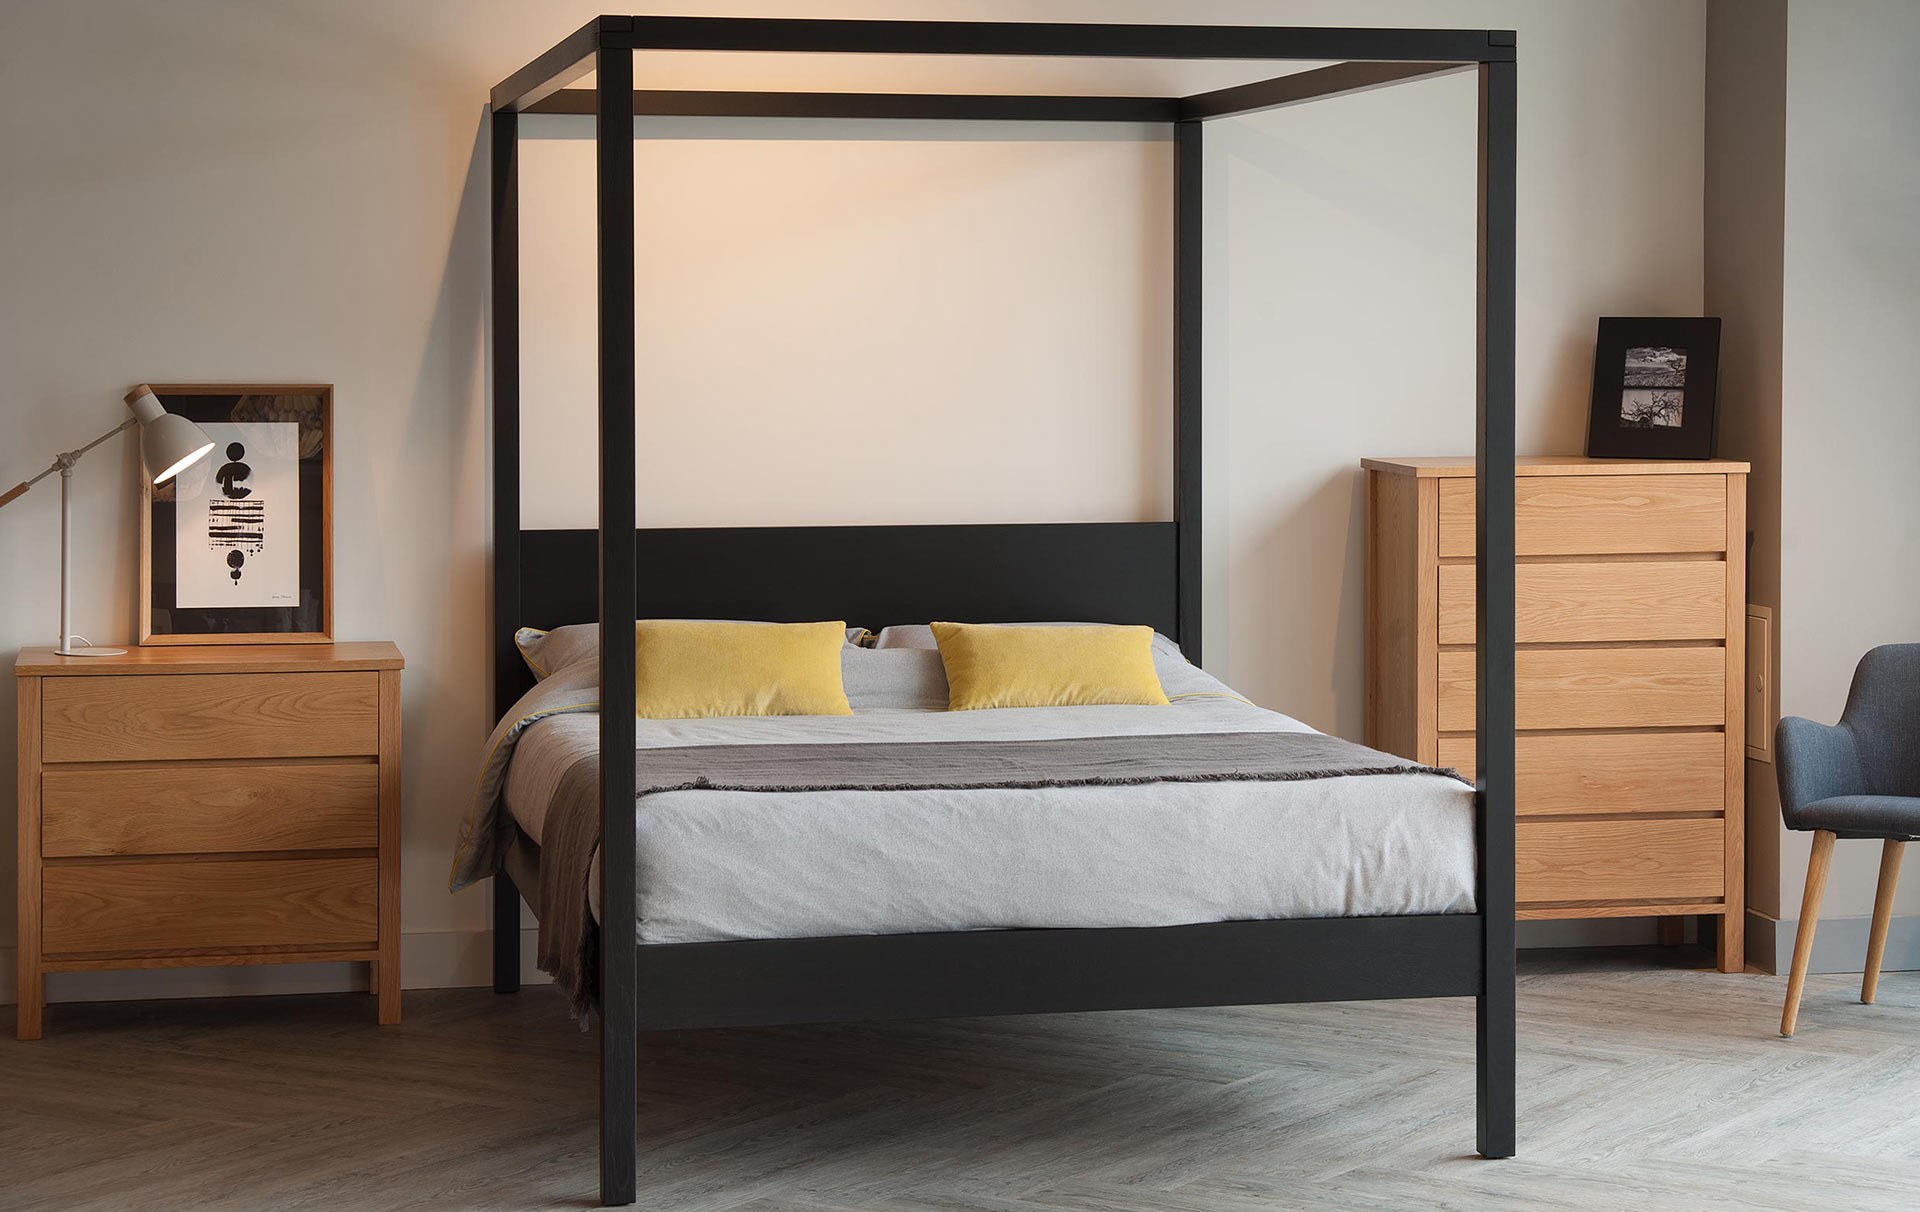 4 Poster Bed Australia Black Orchid Contemporary 4 Poster Natural Bed Company